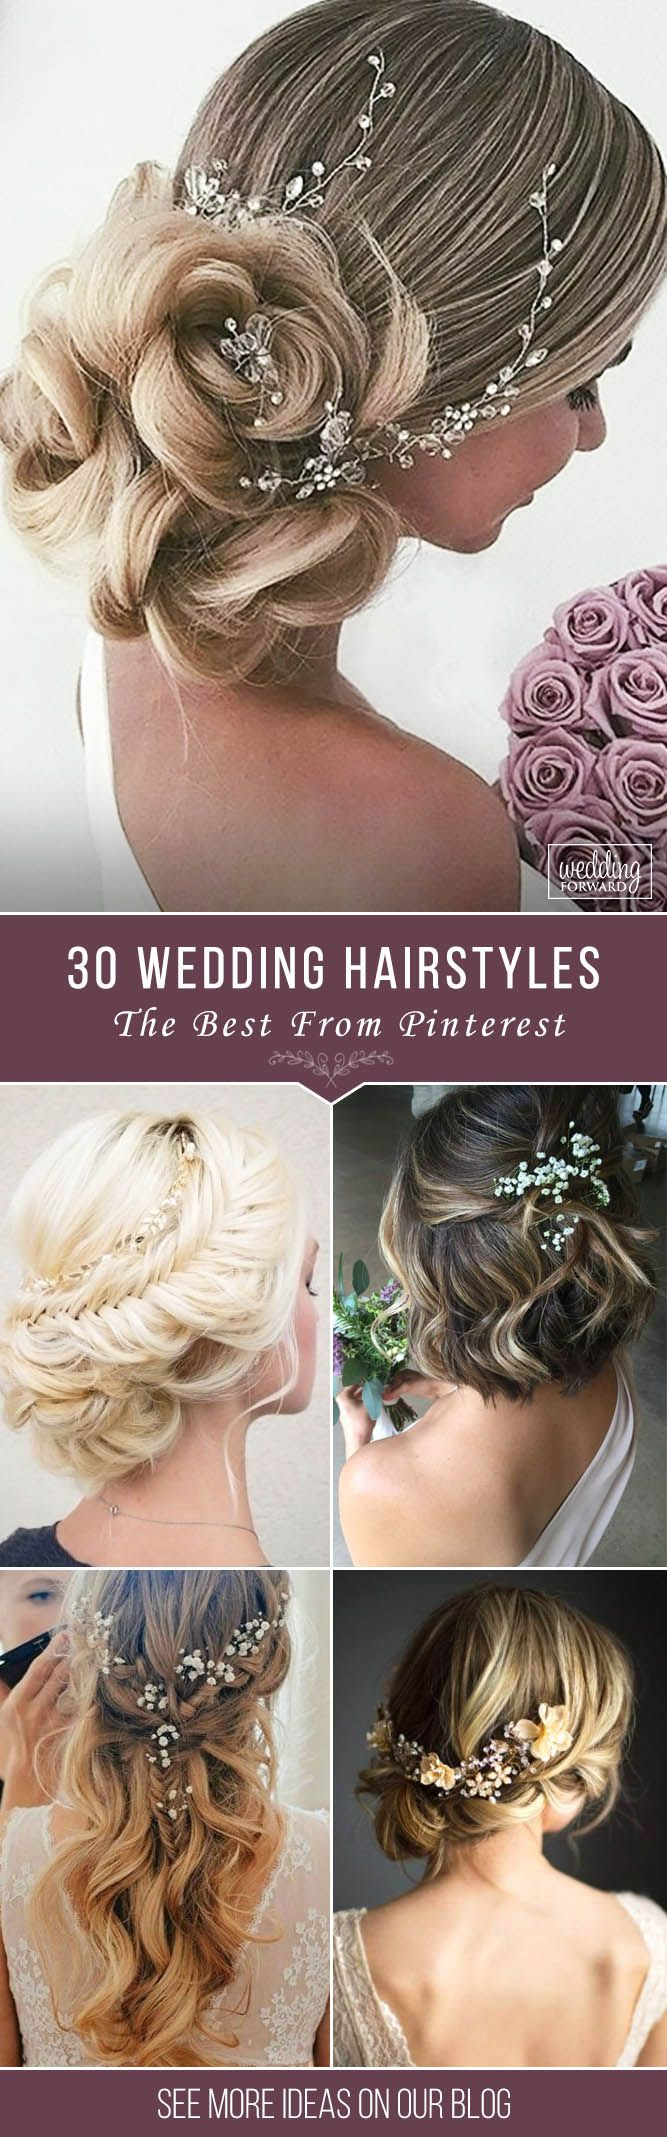 30 Pinterest Wedding Hairstyles For Your Unforgettable Wedding  ❤ If you are i...